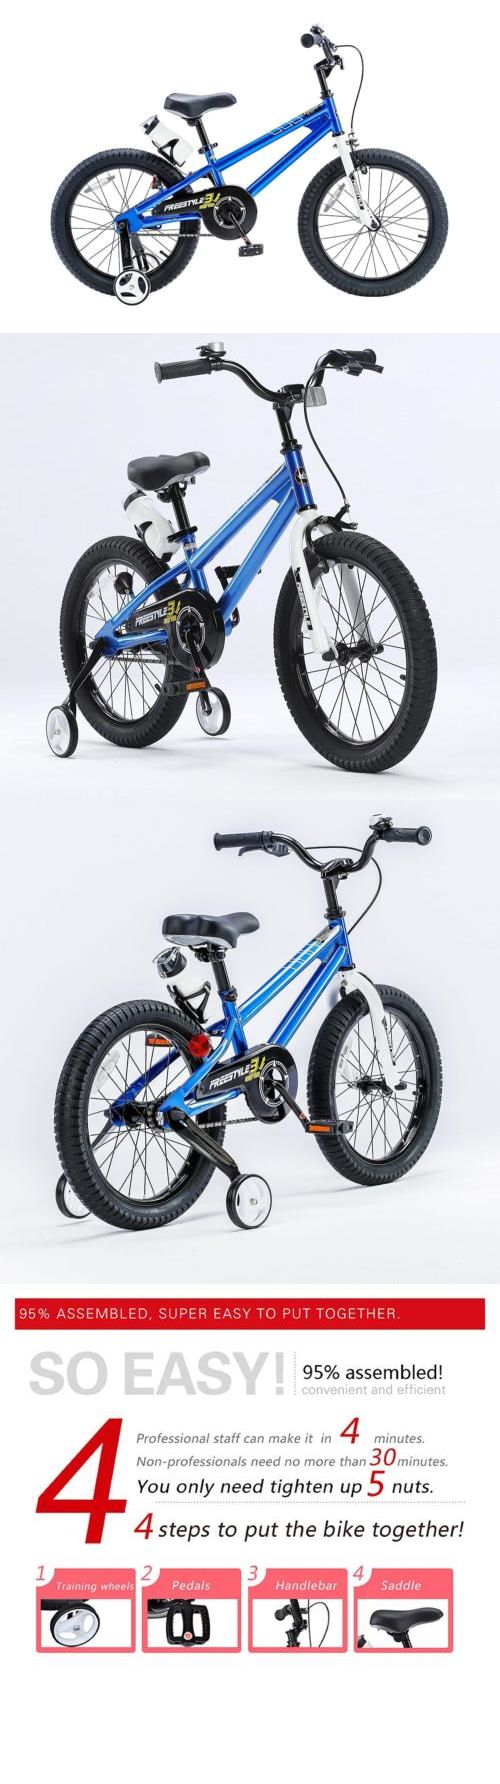 Training Wheels 177839: Bmx Freestyle Kids Bike Boy Royalbaby Bikes Girl Training Wheels 14 Blue New -> BUY IT NOW ONLY: $115.37 on eBay!